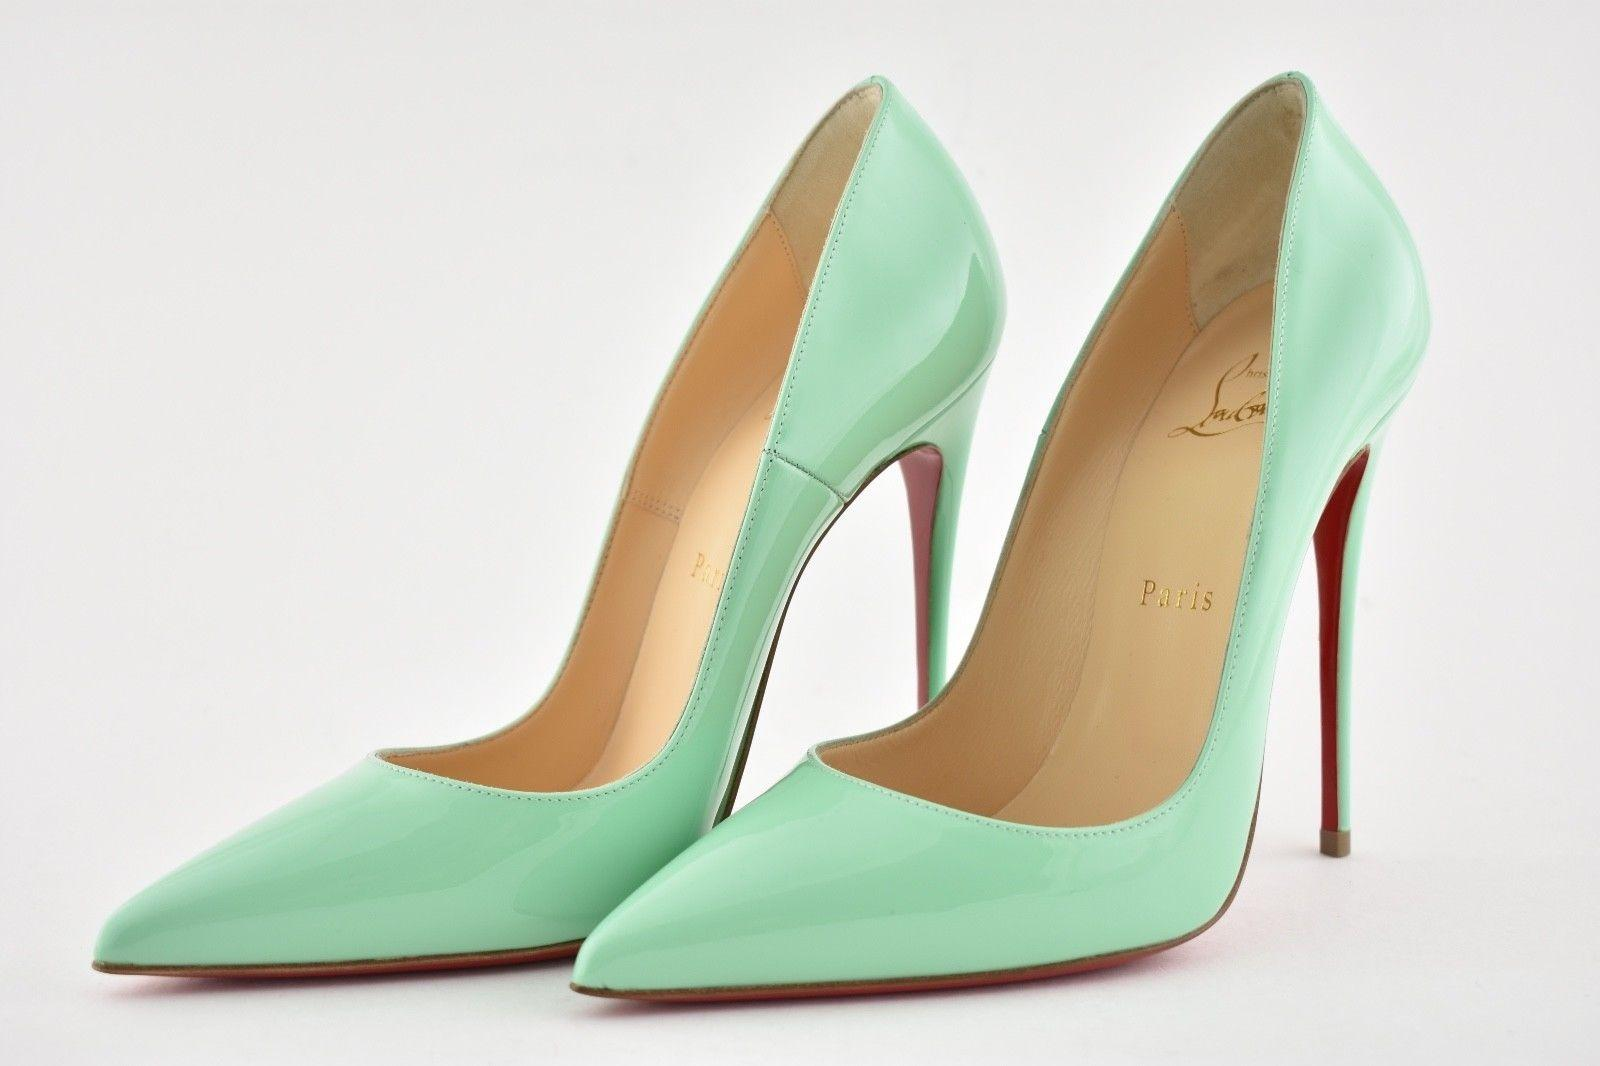 69b6982f44eb ... Gentleman Lady   Christian Louboutin Blue So Kate 120 Opal Opal Opal  Green Patent Leather ...